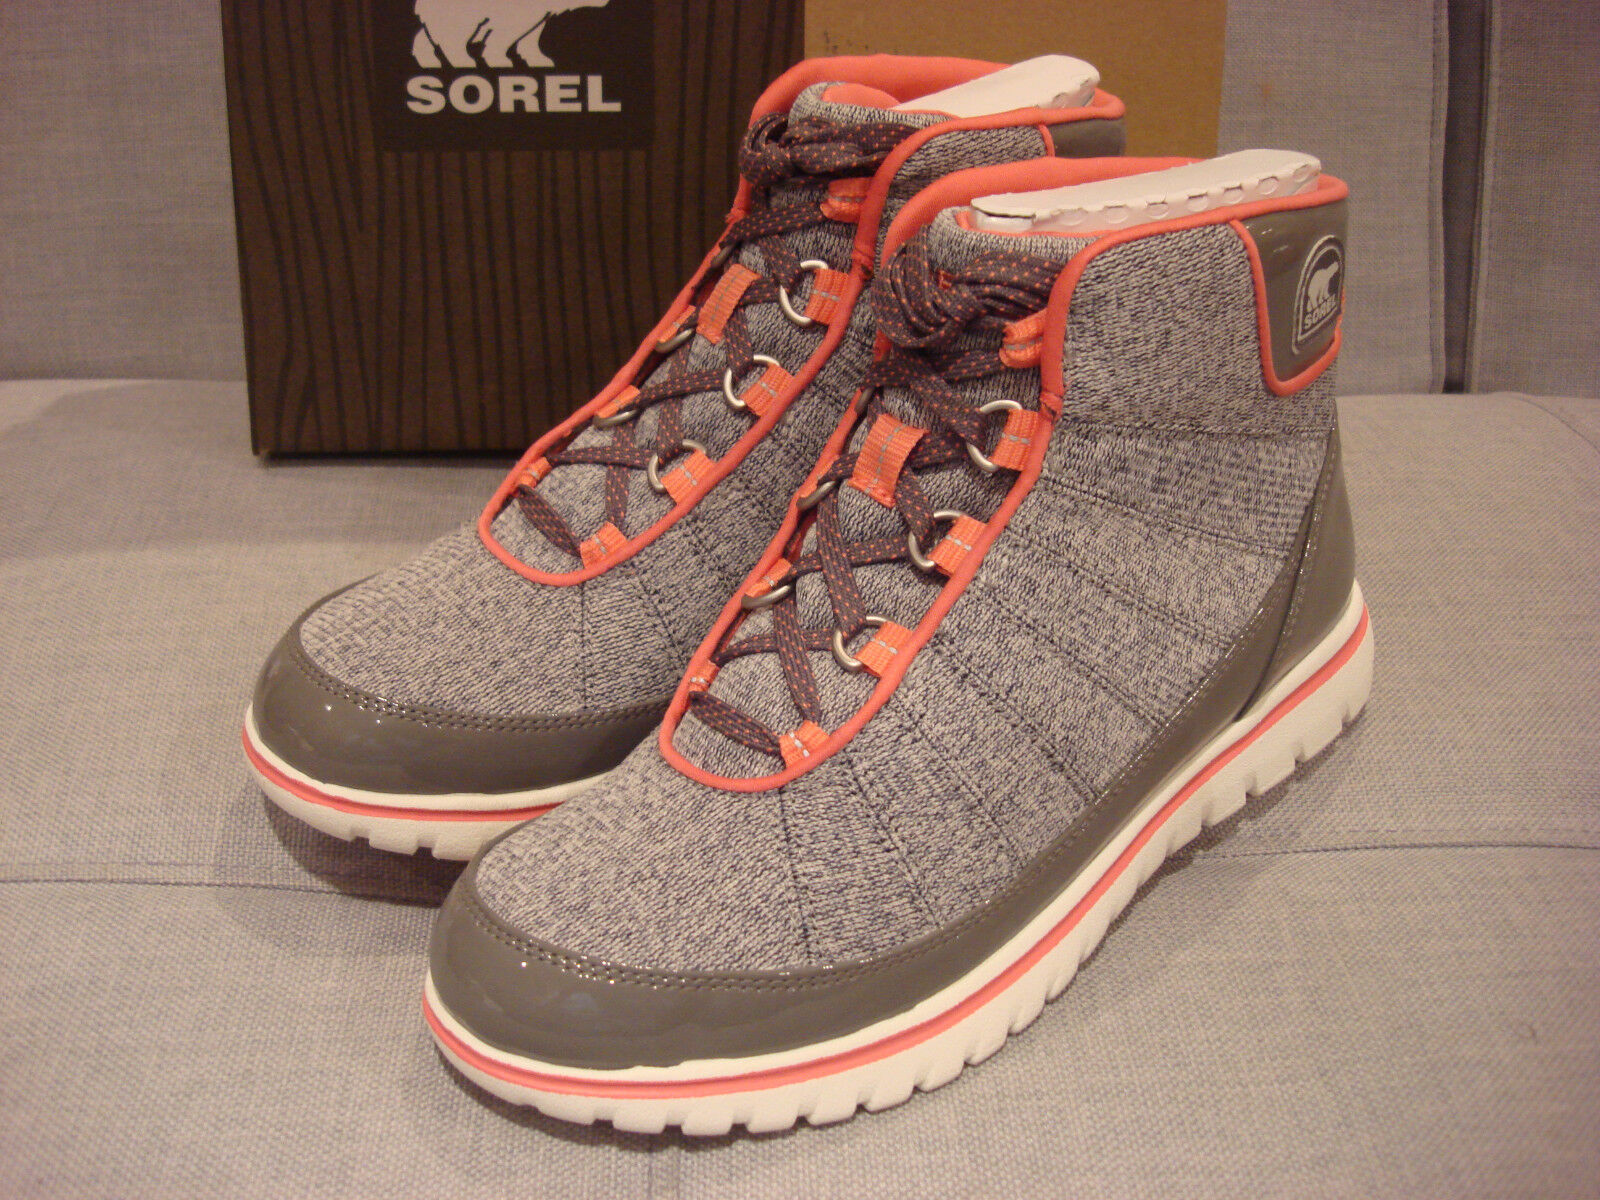 SOREL SOREL SOREL WOMEN'S TIVOLI GO HIGH LIGHT GREY WILD MELON SIZE 6 Schuhe - BRAND NEW ffadab